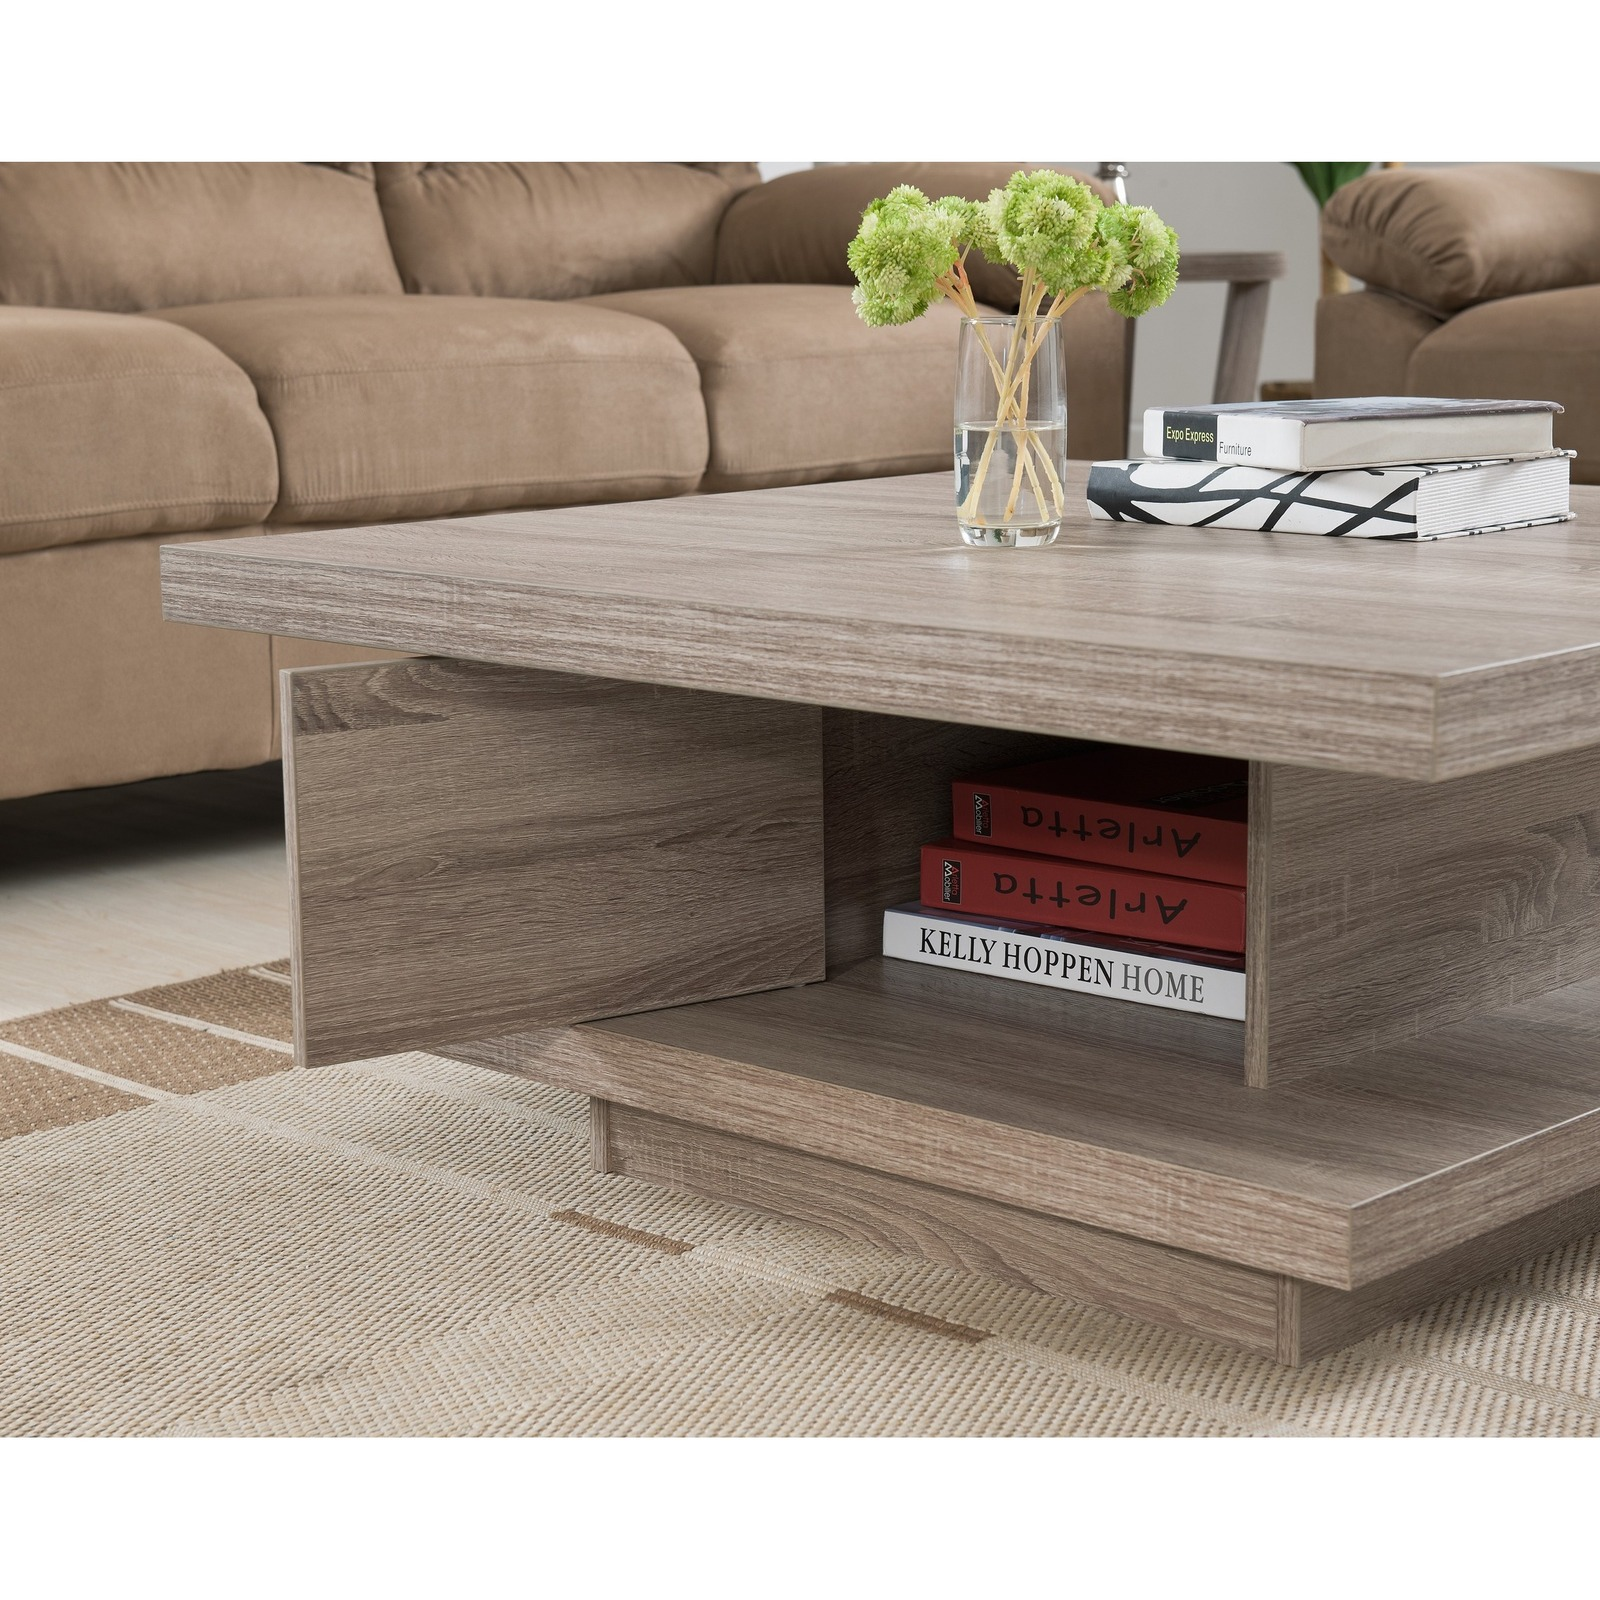 Contemporary Modern Wood Coffee Tables Unique Square Style